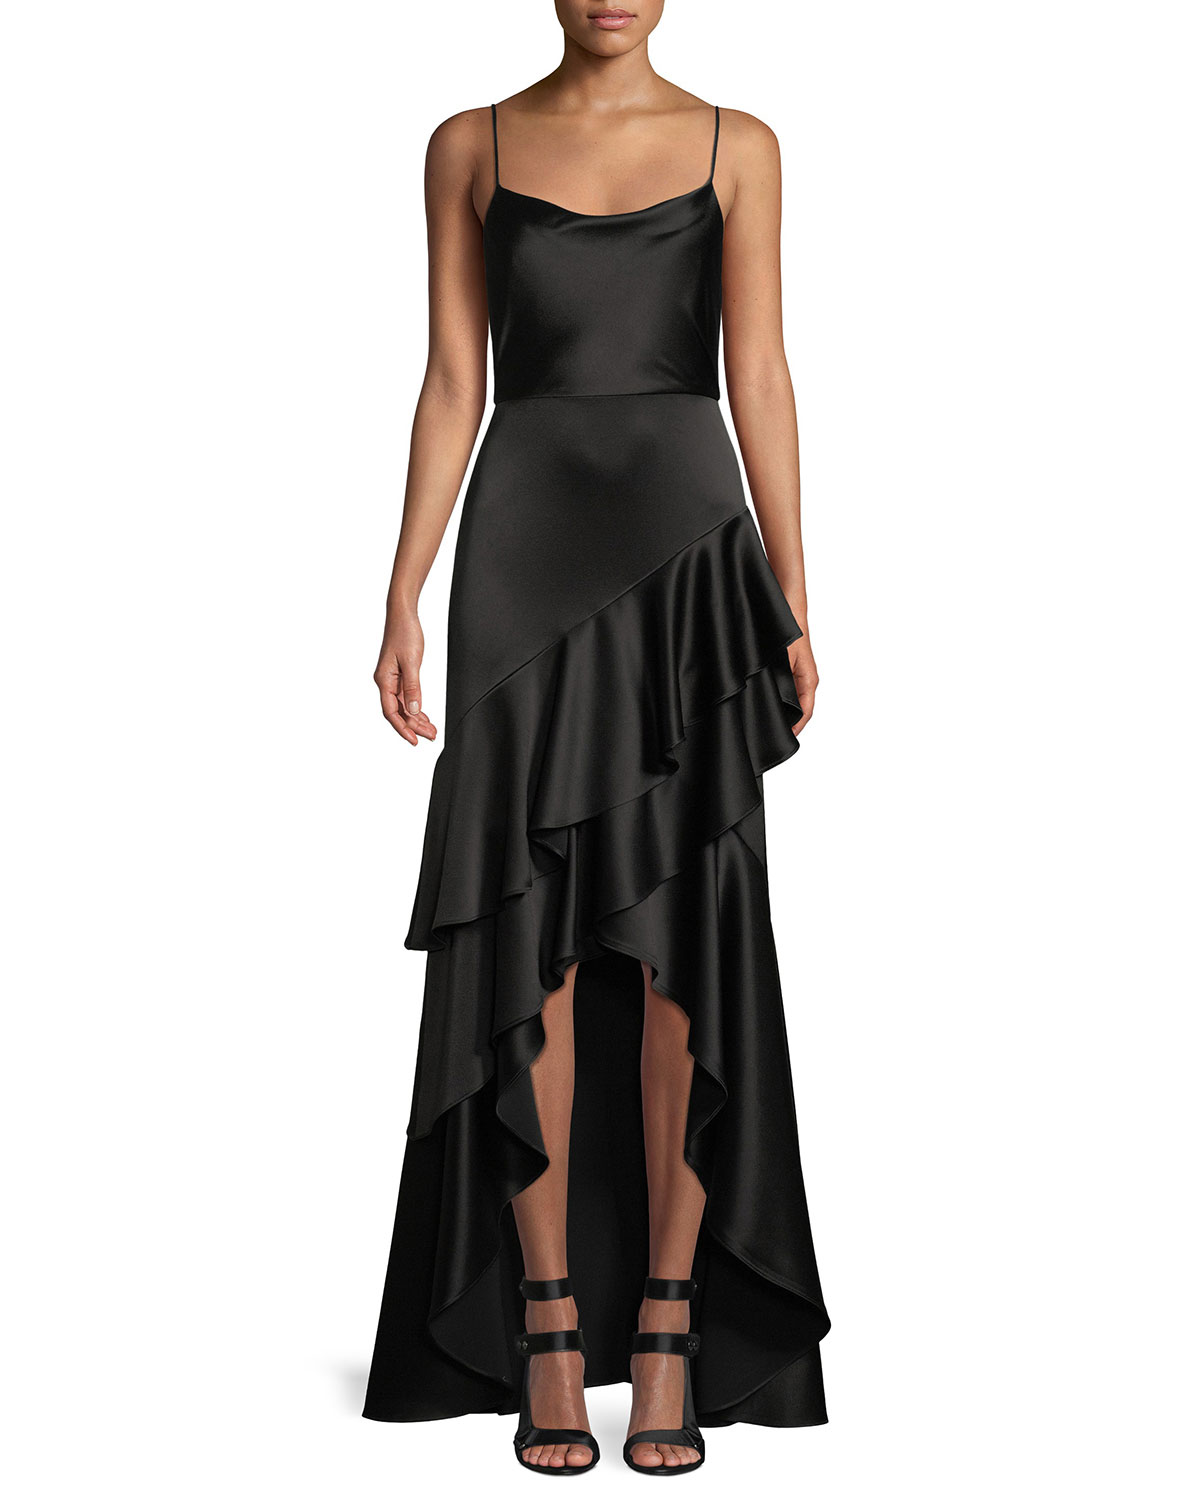 Alice + Olivia Lauralei Ruffle High-Low Gown | Neiman Marcus